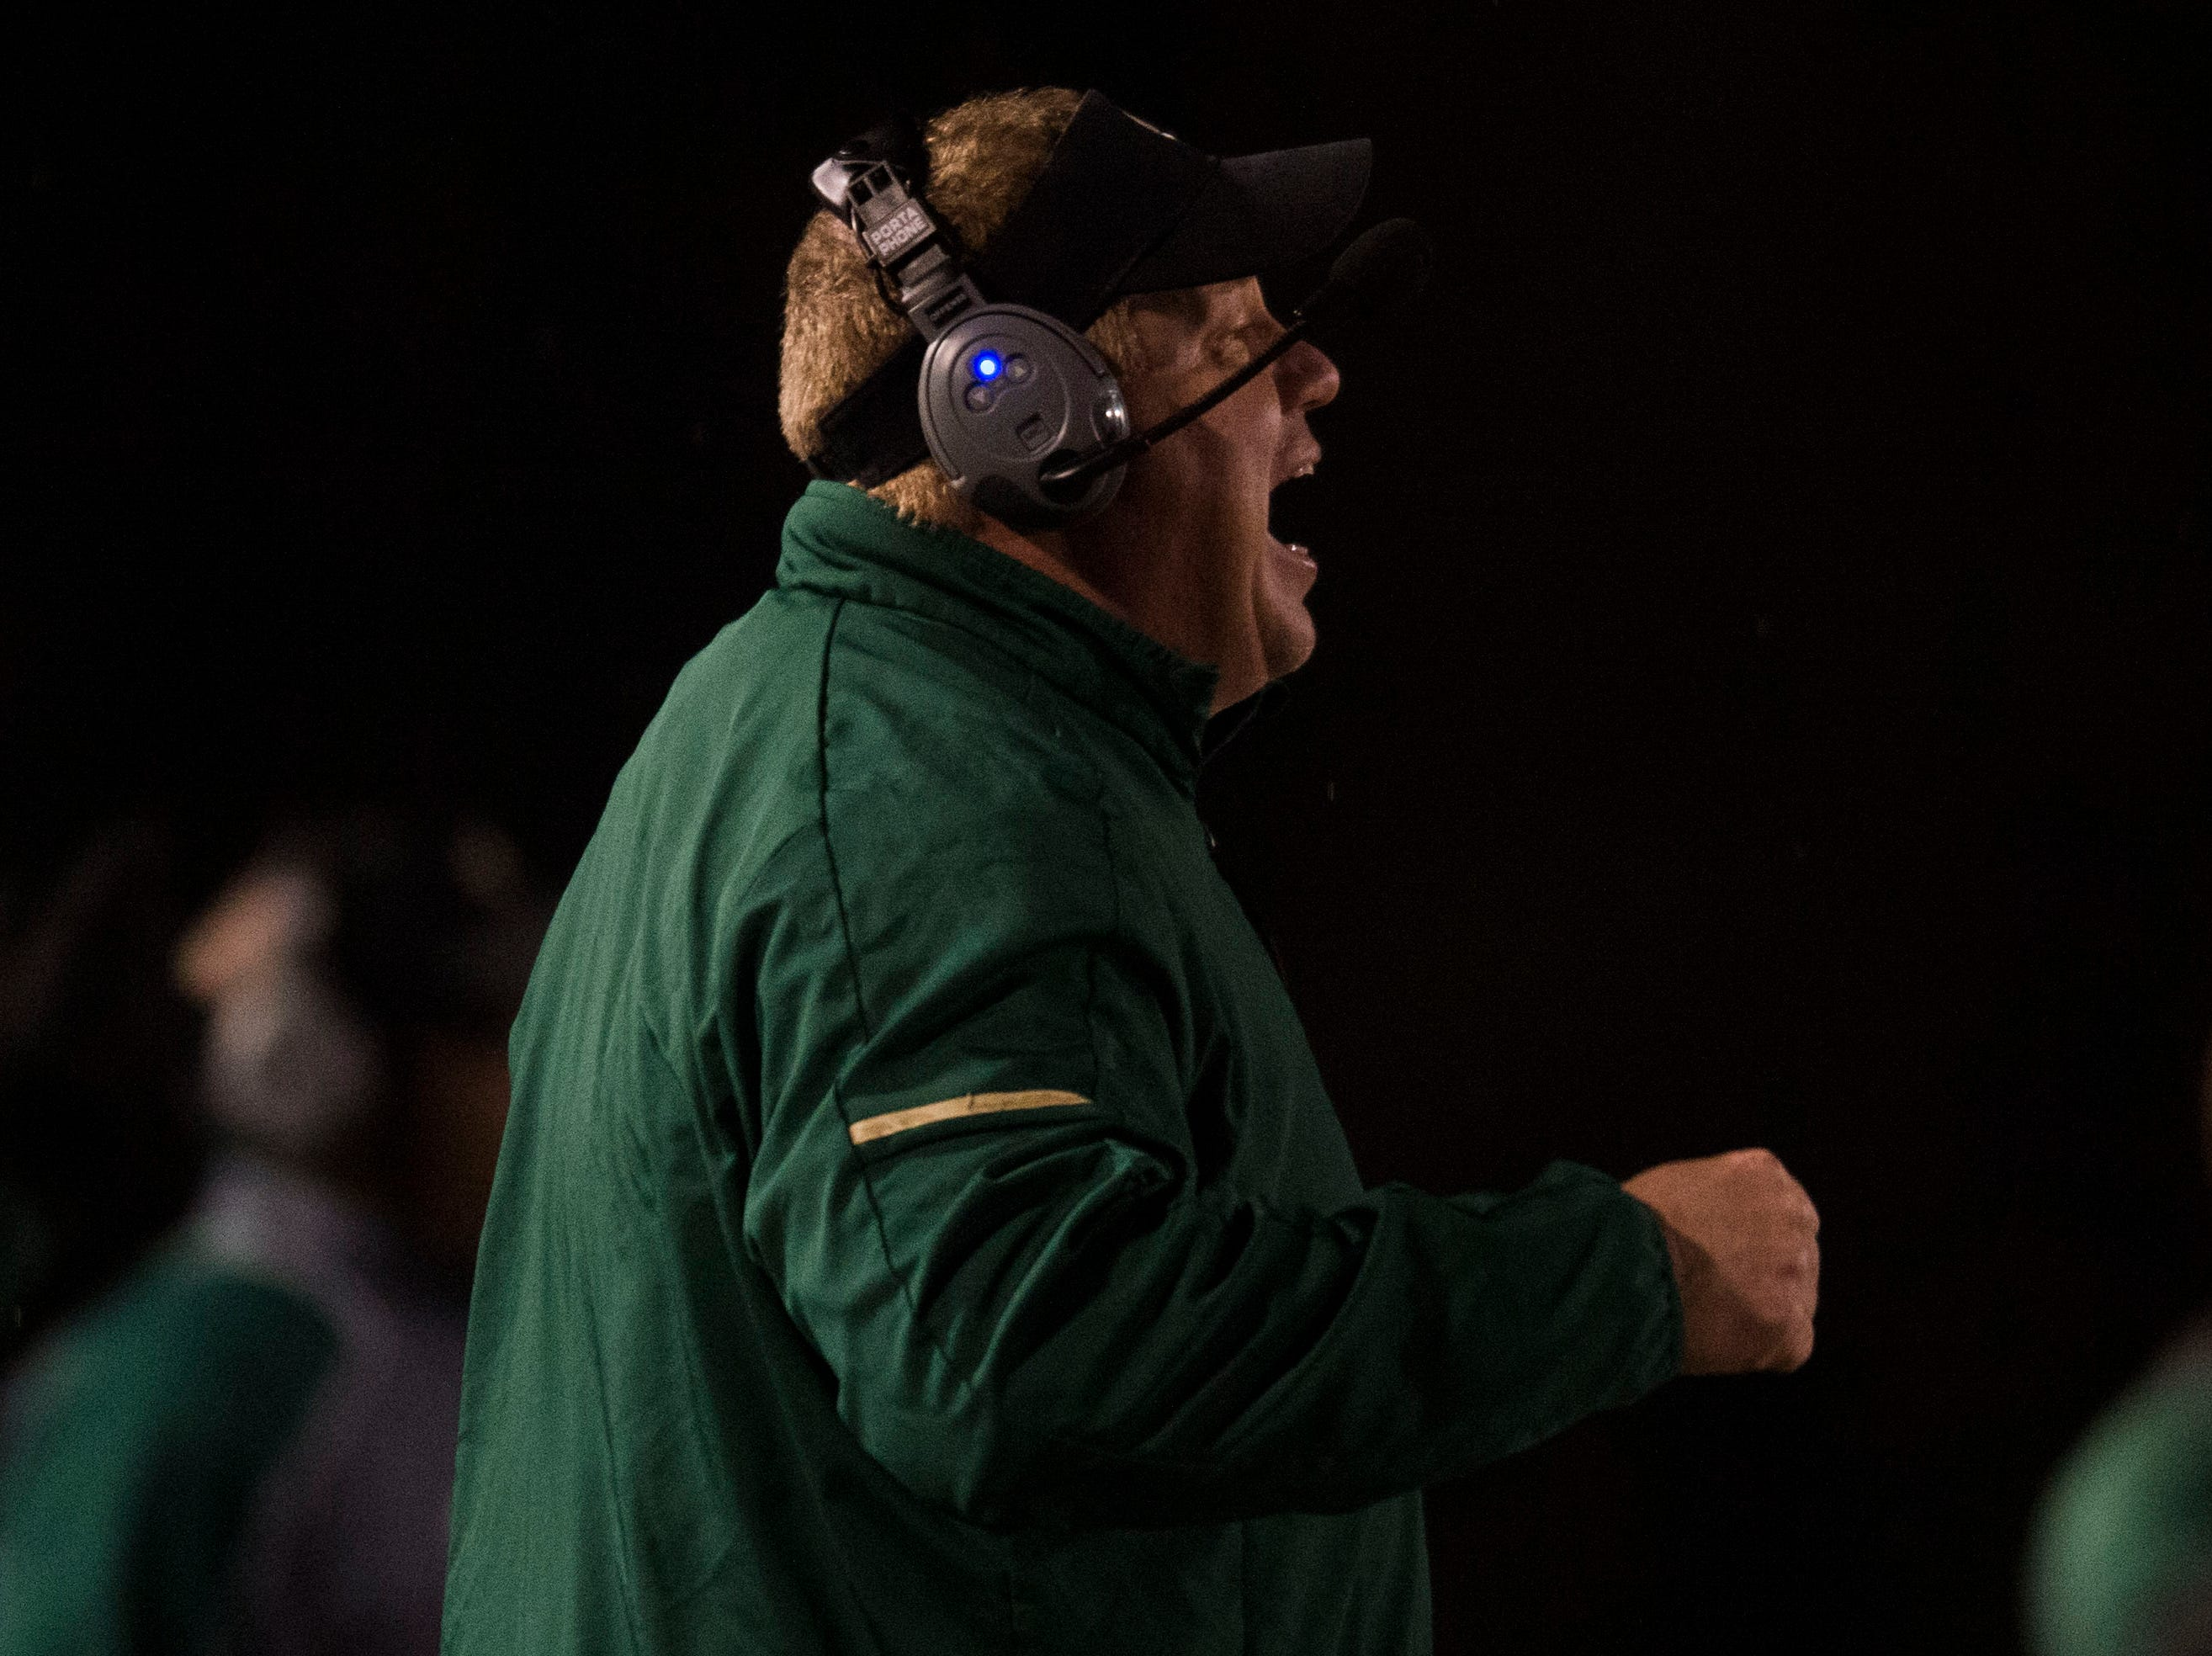 Catholic Head Coach Steve Matthews yells to the field during a Class 5A semifinal game between Central at Catholic Friday, Nov. 23, 2018. Central defeated Catholic 24-19.